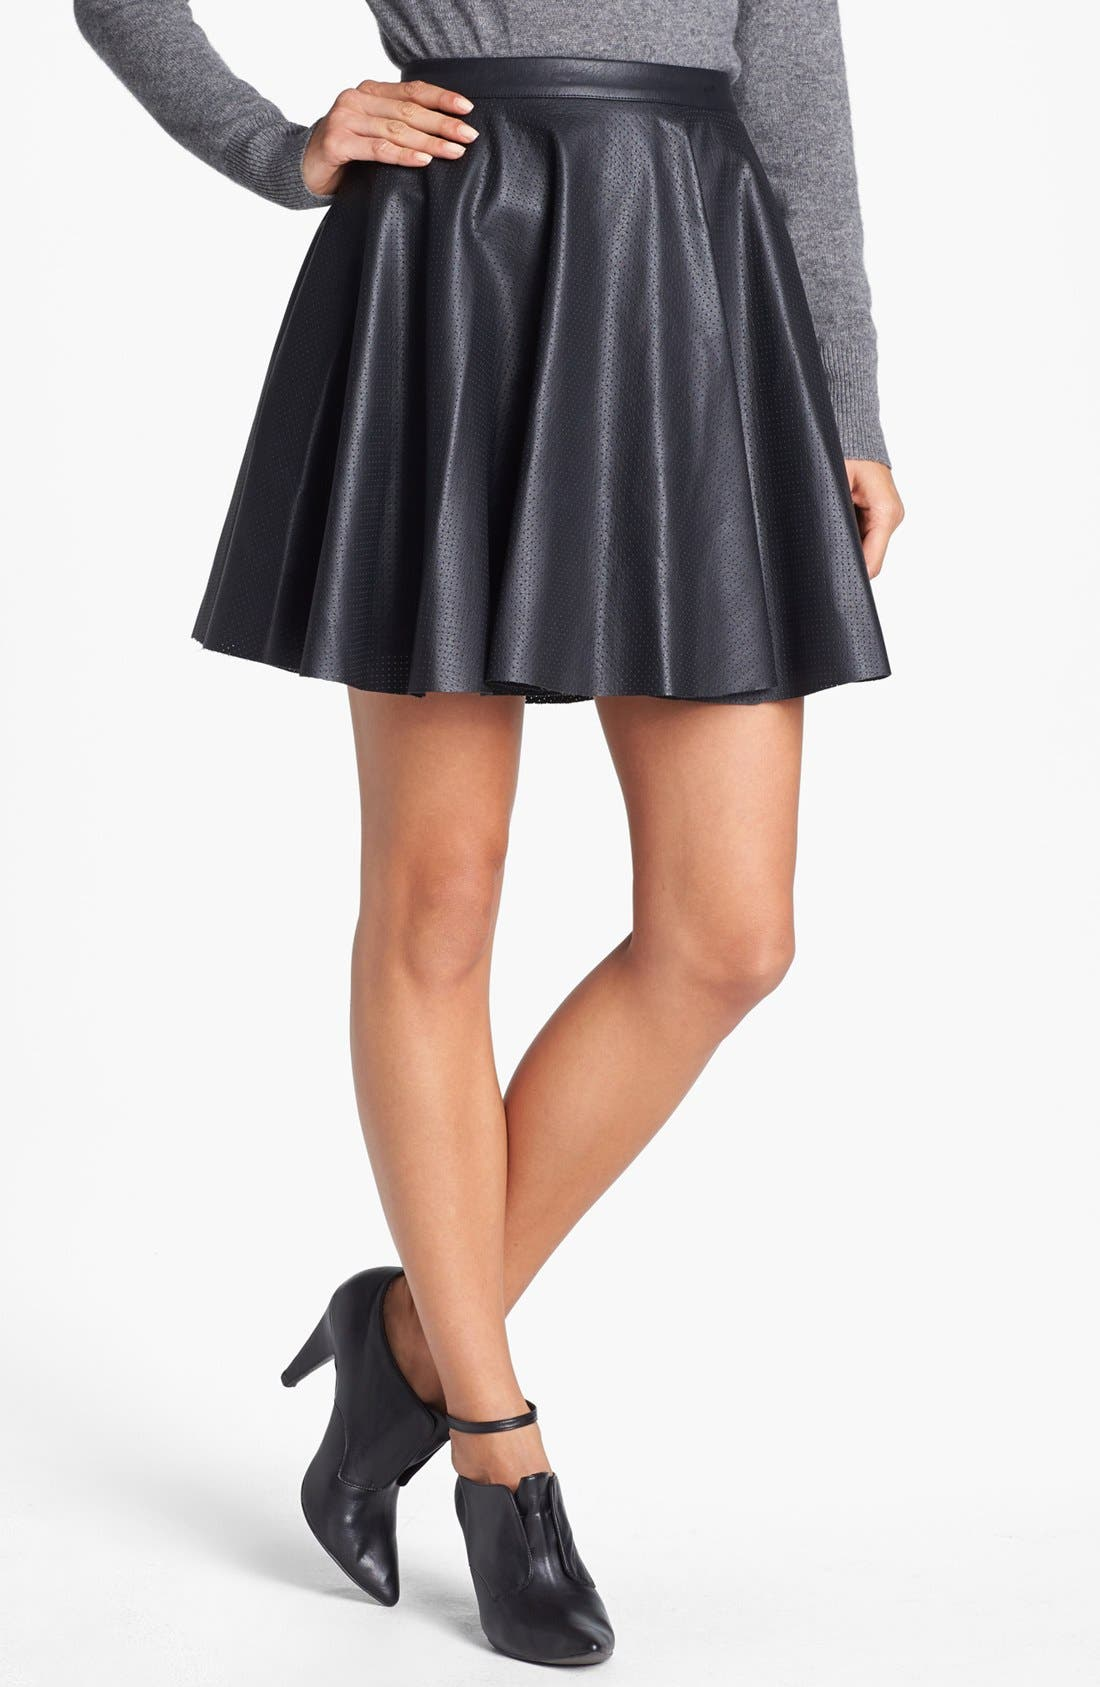 Main Image - Vince Camuto Perforated Faux Leather Skater Miniskirt